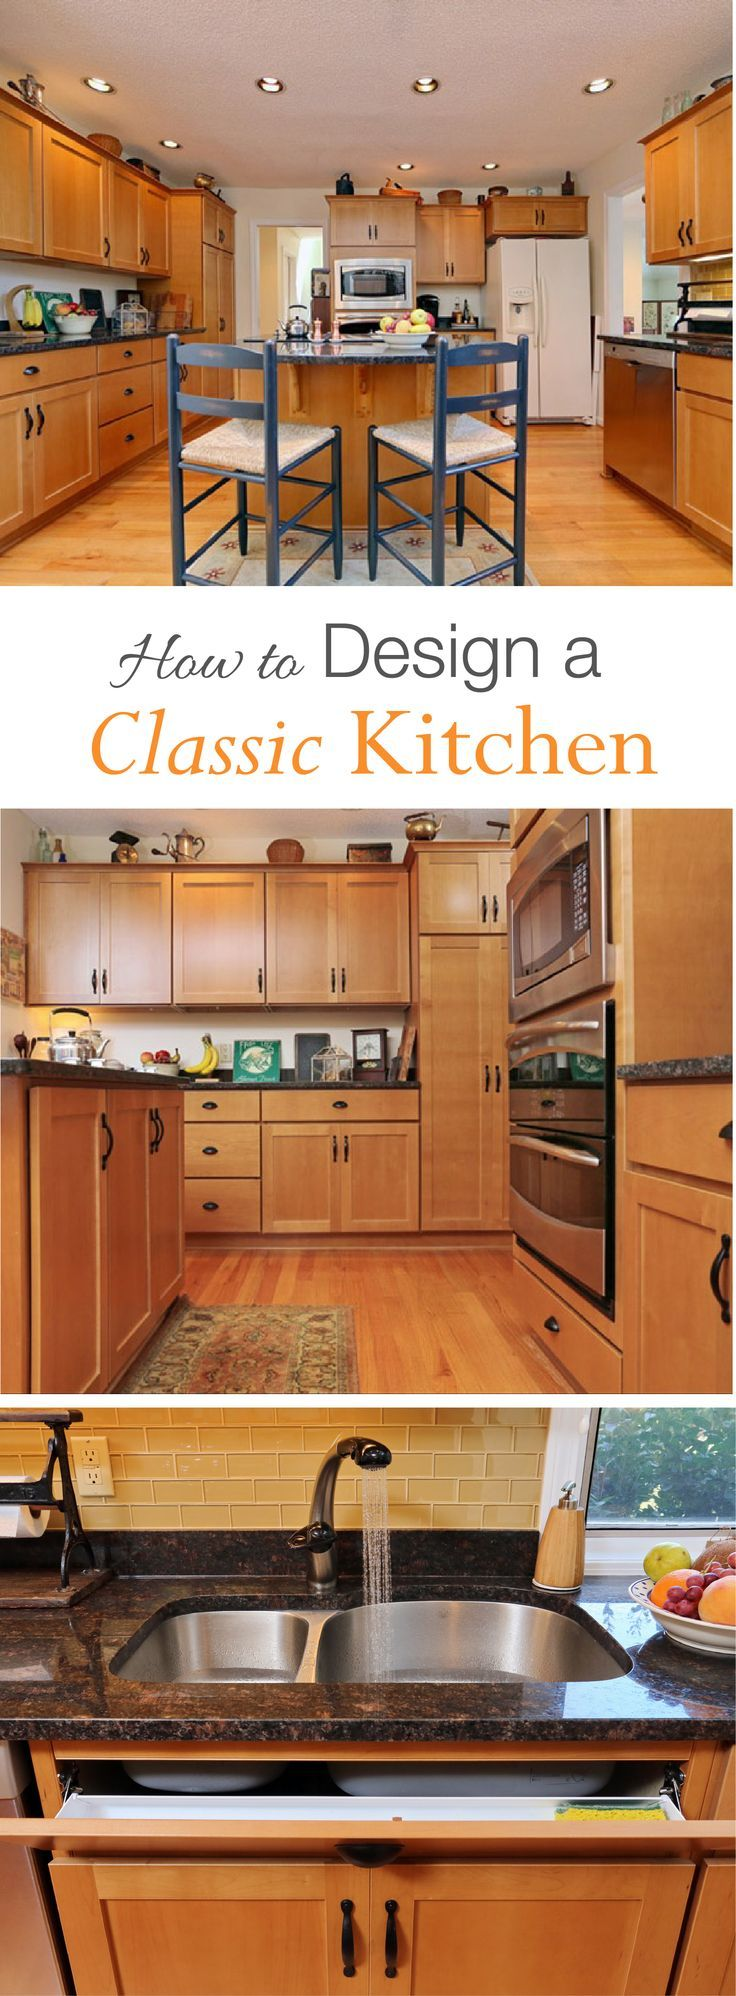 63 best Classic Kitchens images on Pinterest | Cottage, Doors and ...